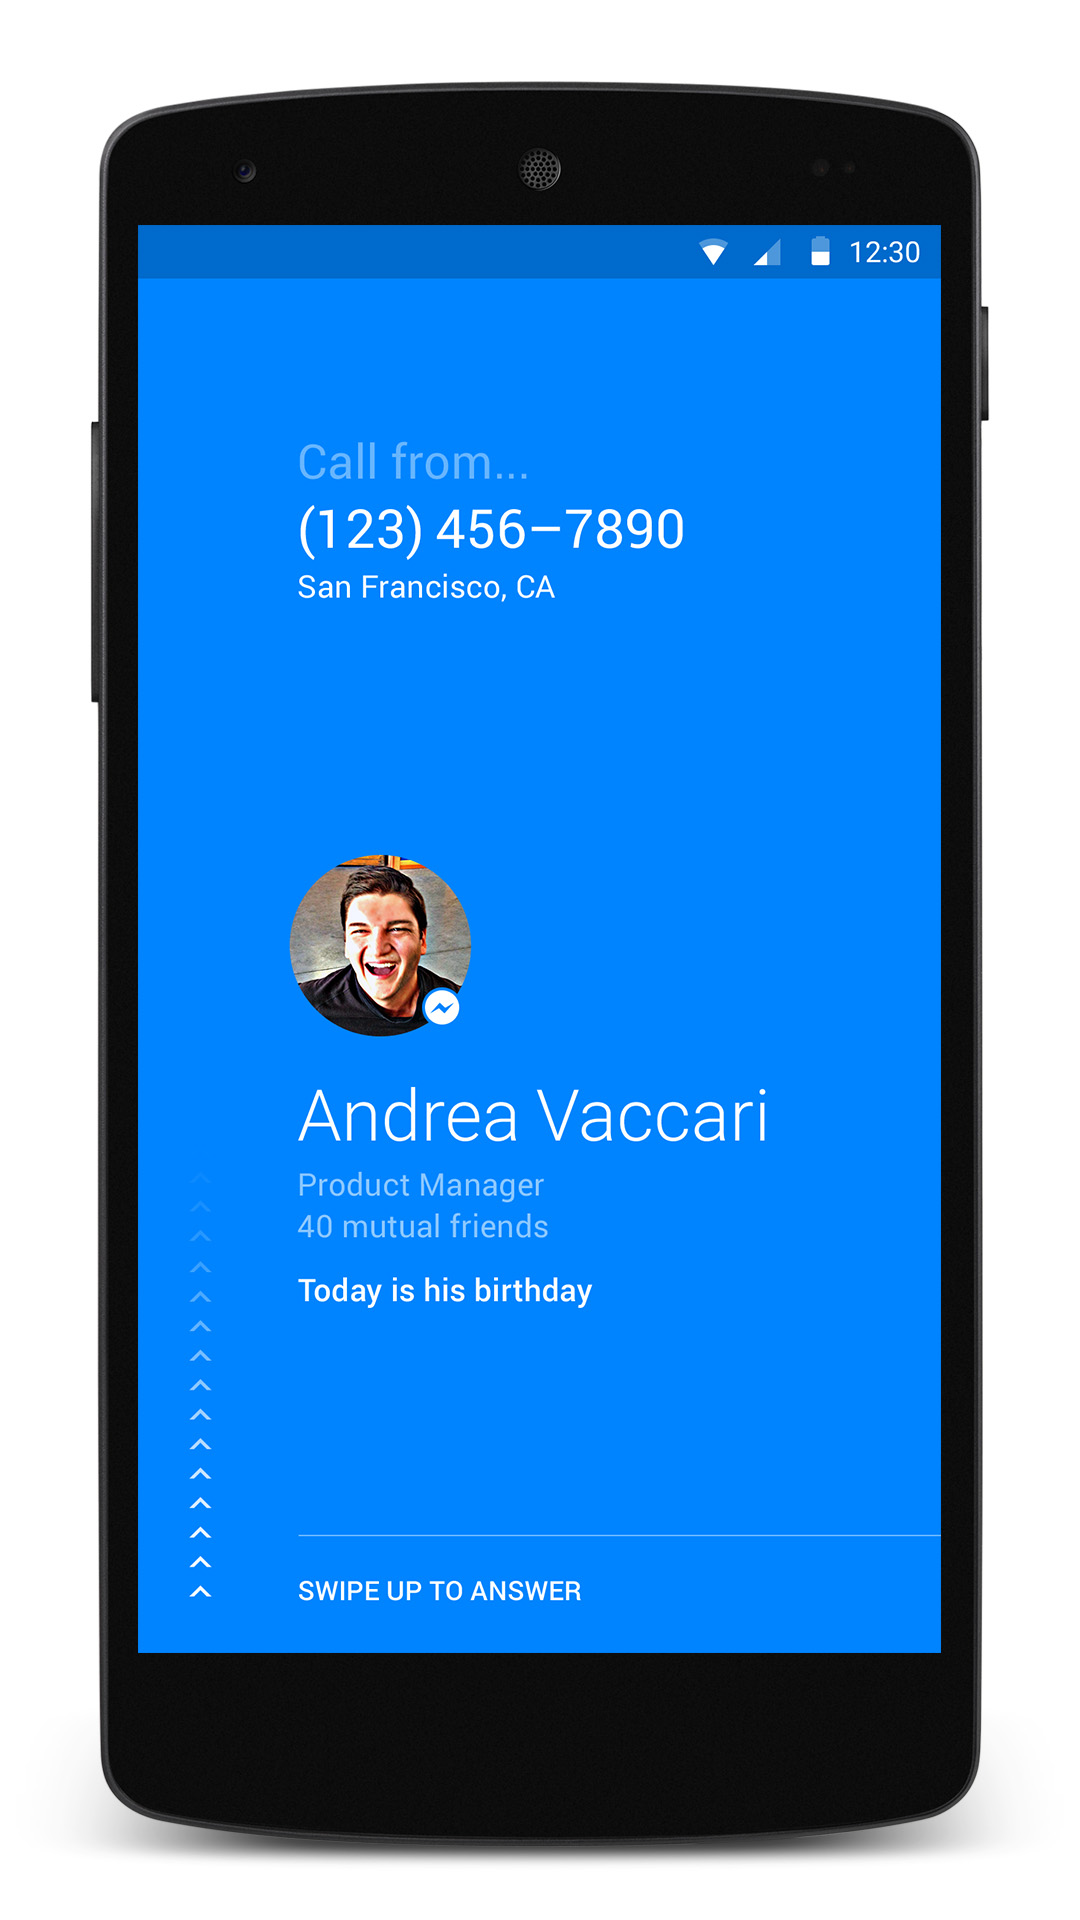 Facebook intros a calling app for Android phones